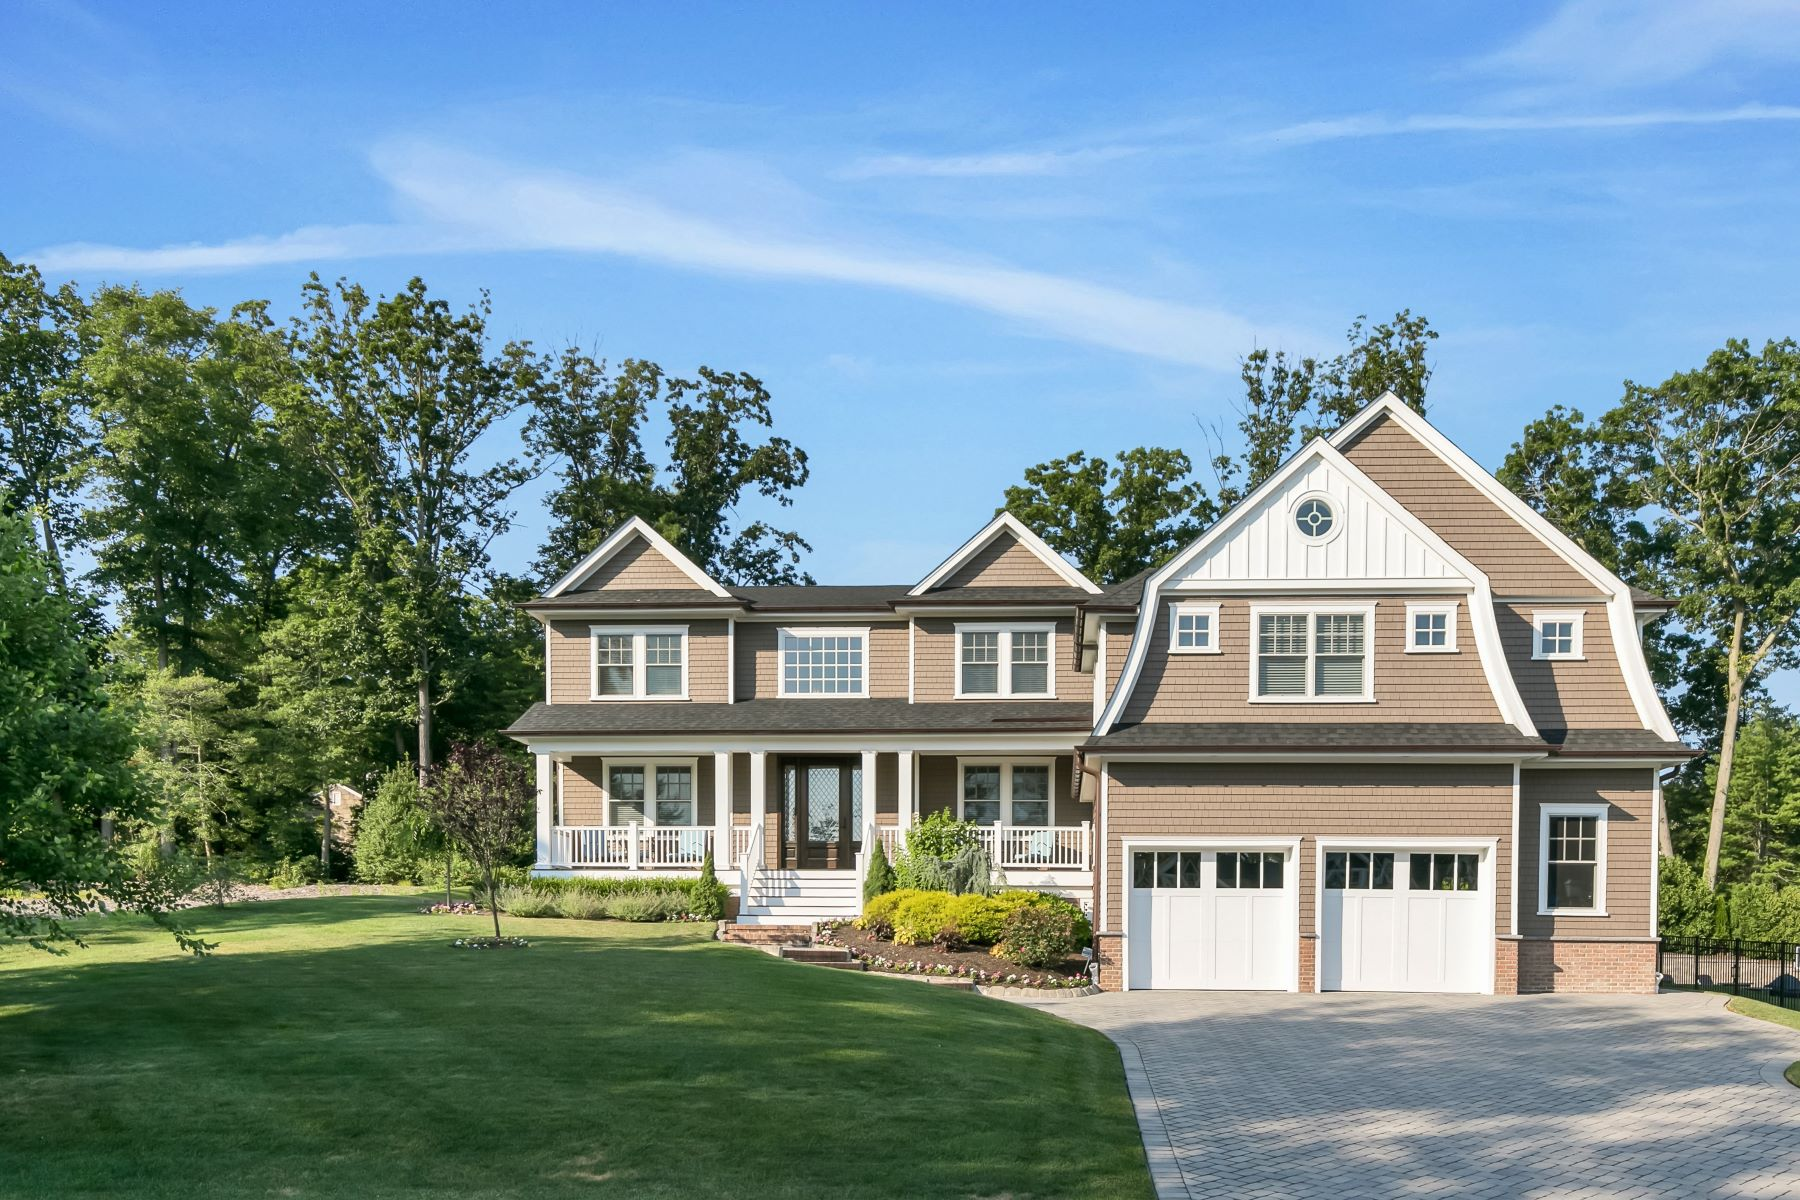 Single Family Homes for Active at Stunning Brielle Colonial 13 N Tamarack Drive Brielle, New Jersey 08730 United States